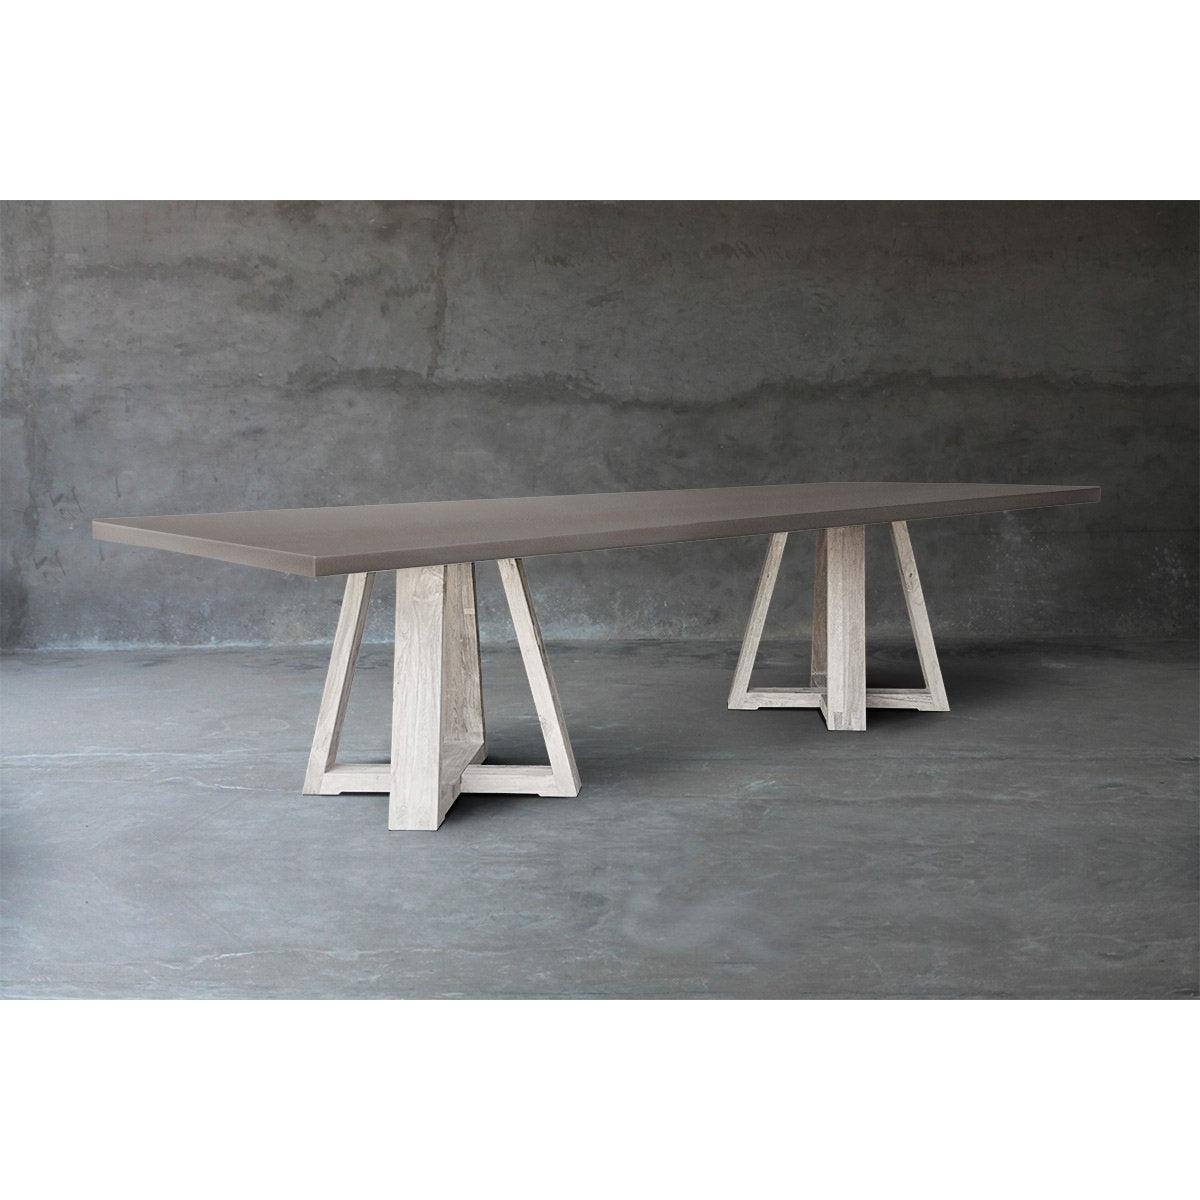 Concrete Top Dining Table - Double X Base